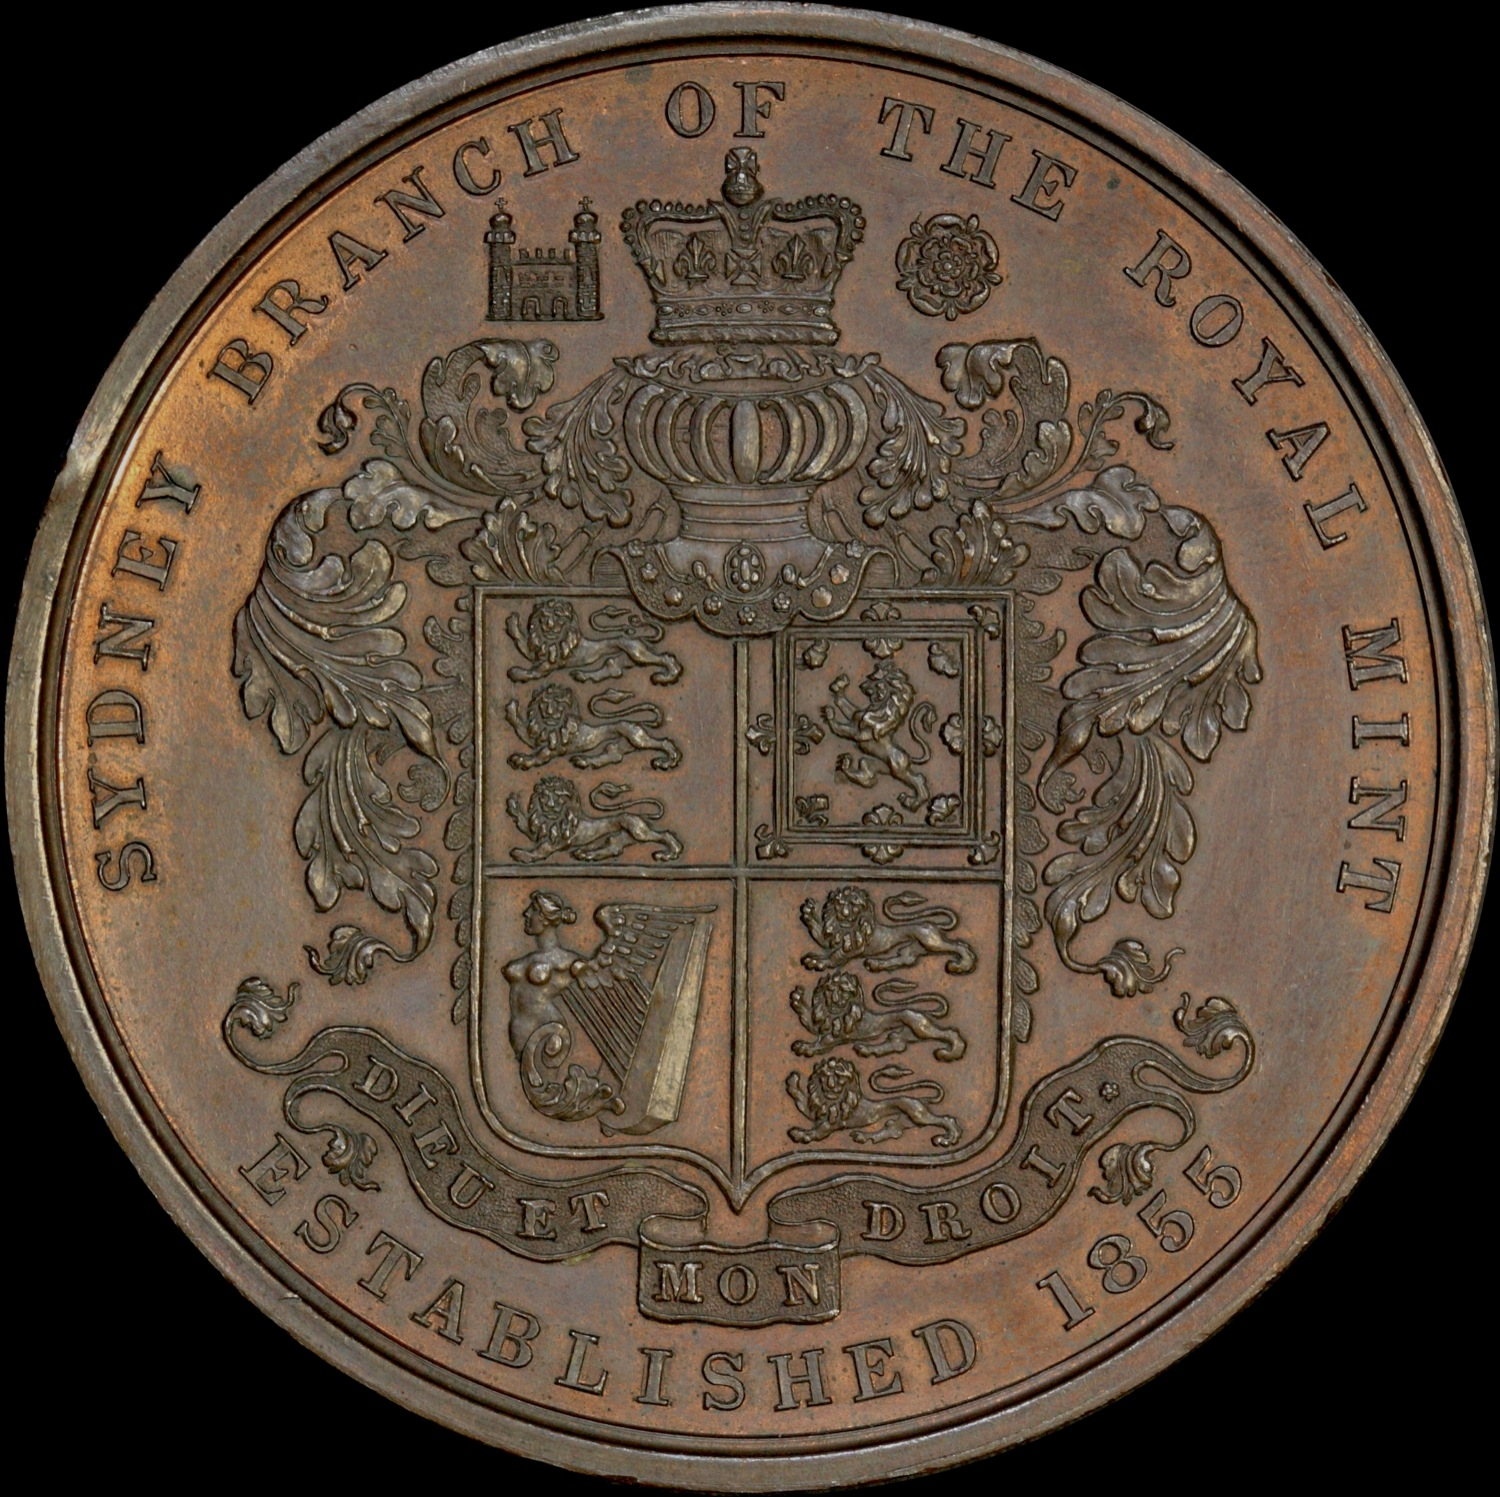 The Sydney Mint Medallion of 1901 - Reverse